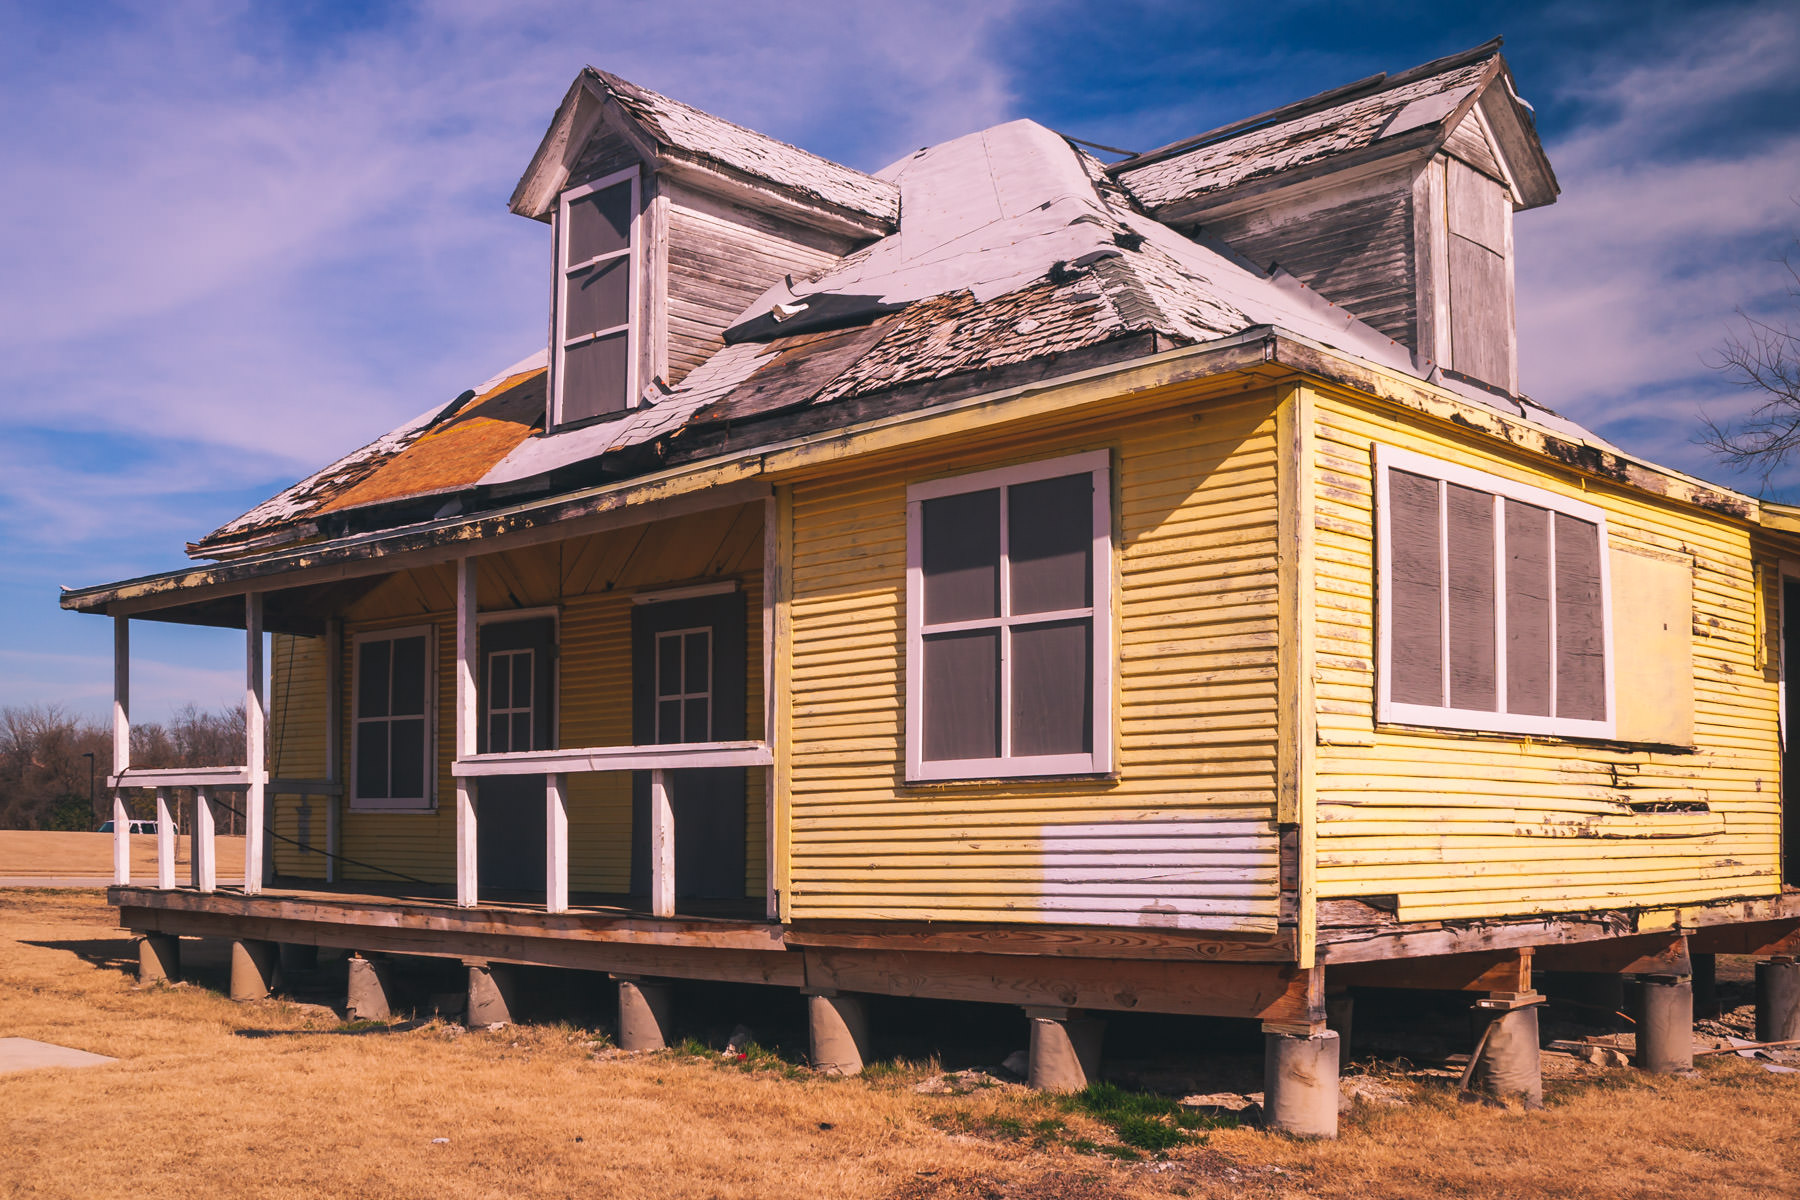 An abandoned house in Allen, Texas.